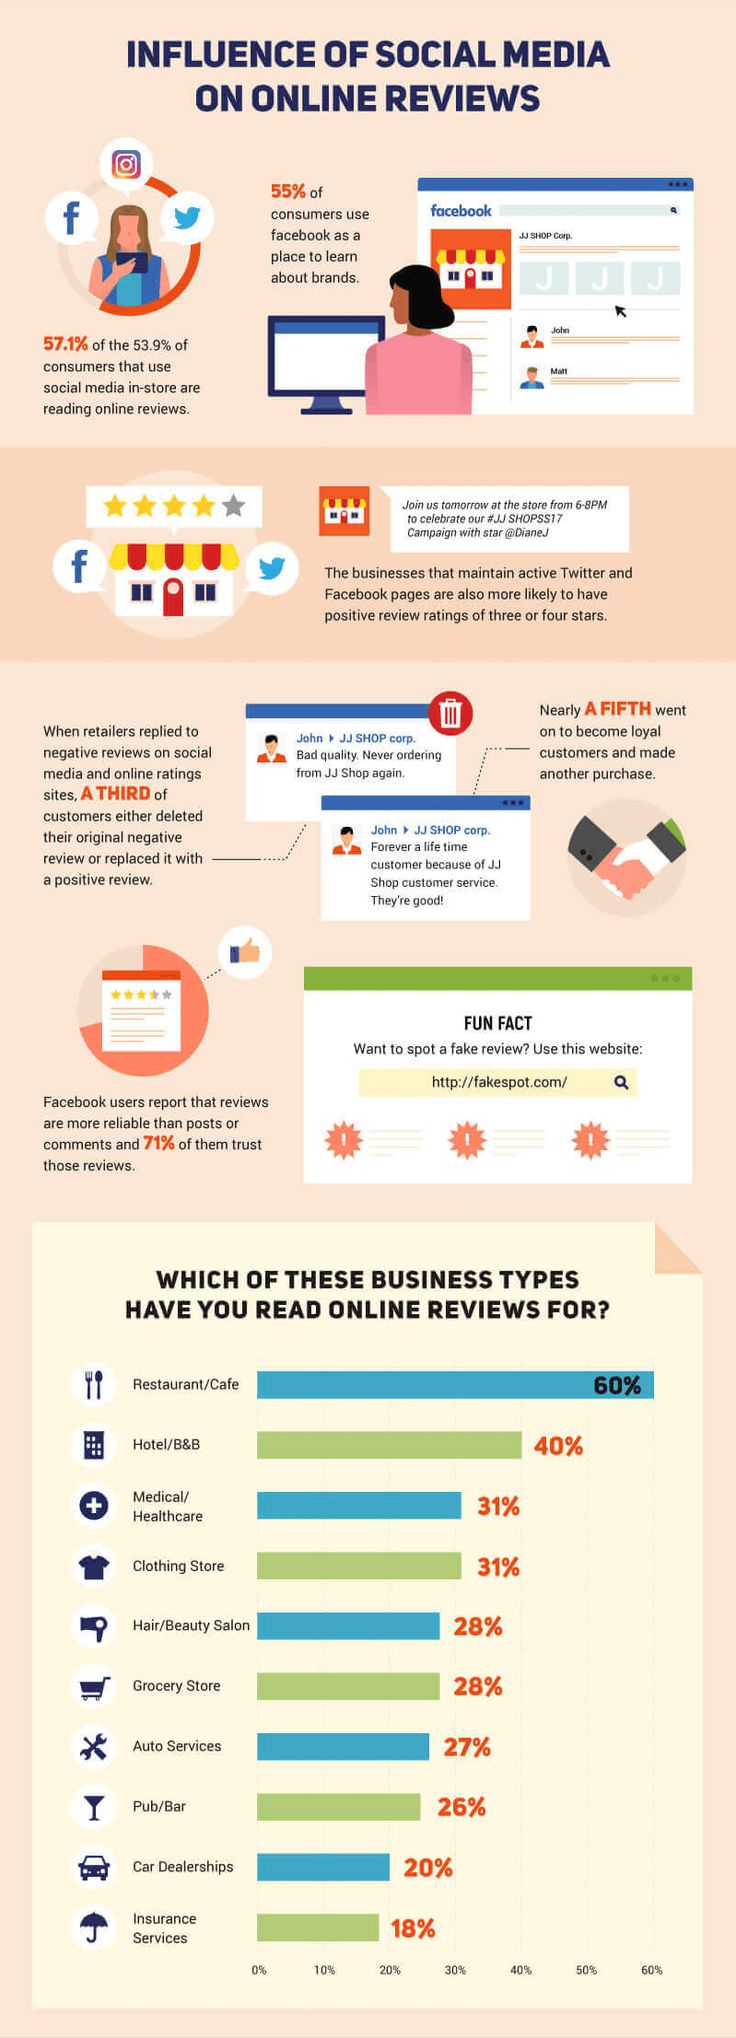 If you own a business, this infographic will help you to understand how consumers read and use online review sites. These stats may help you to grasp the importance of reviews and give ideas how to use them to boost your business or avoid downfalls. The infographic does not focus on any particular industry, but if you're someone who bases decisions on facts, you may find it useful and inspiring.